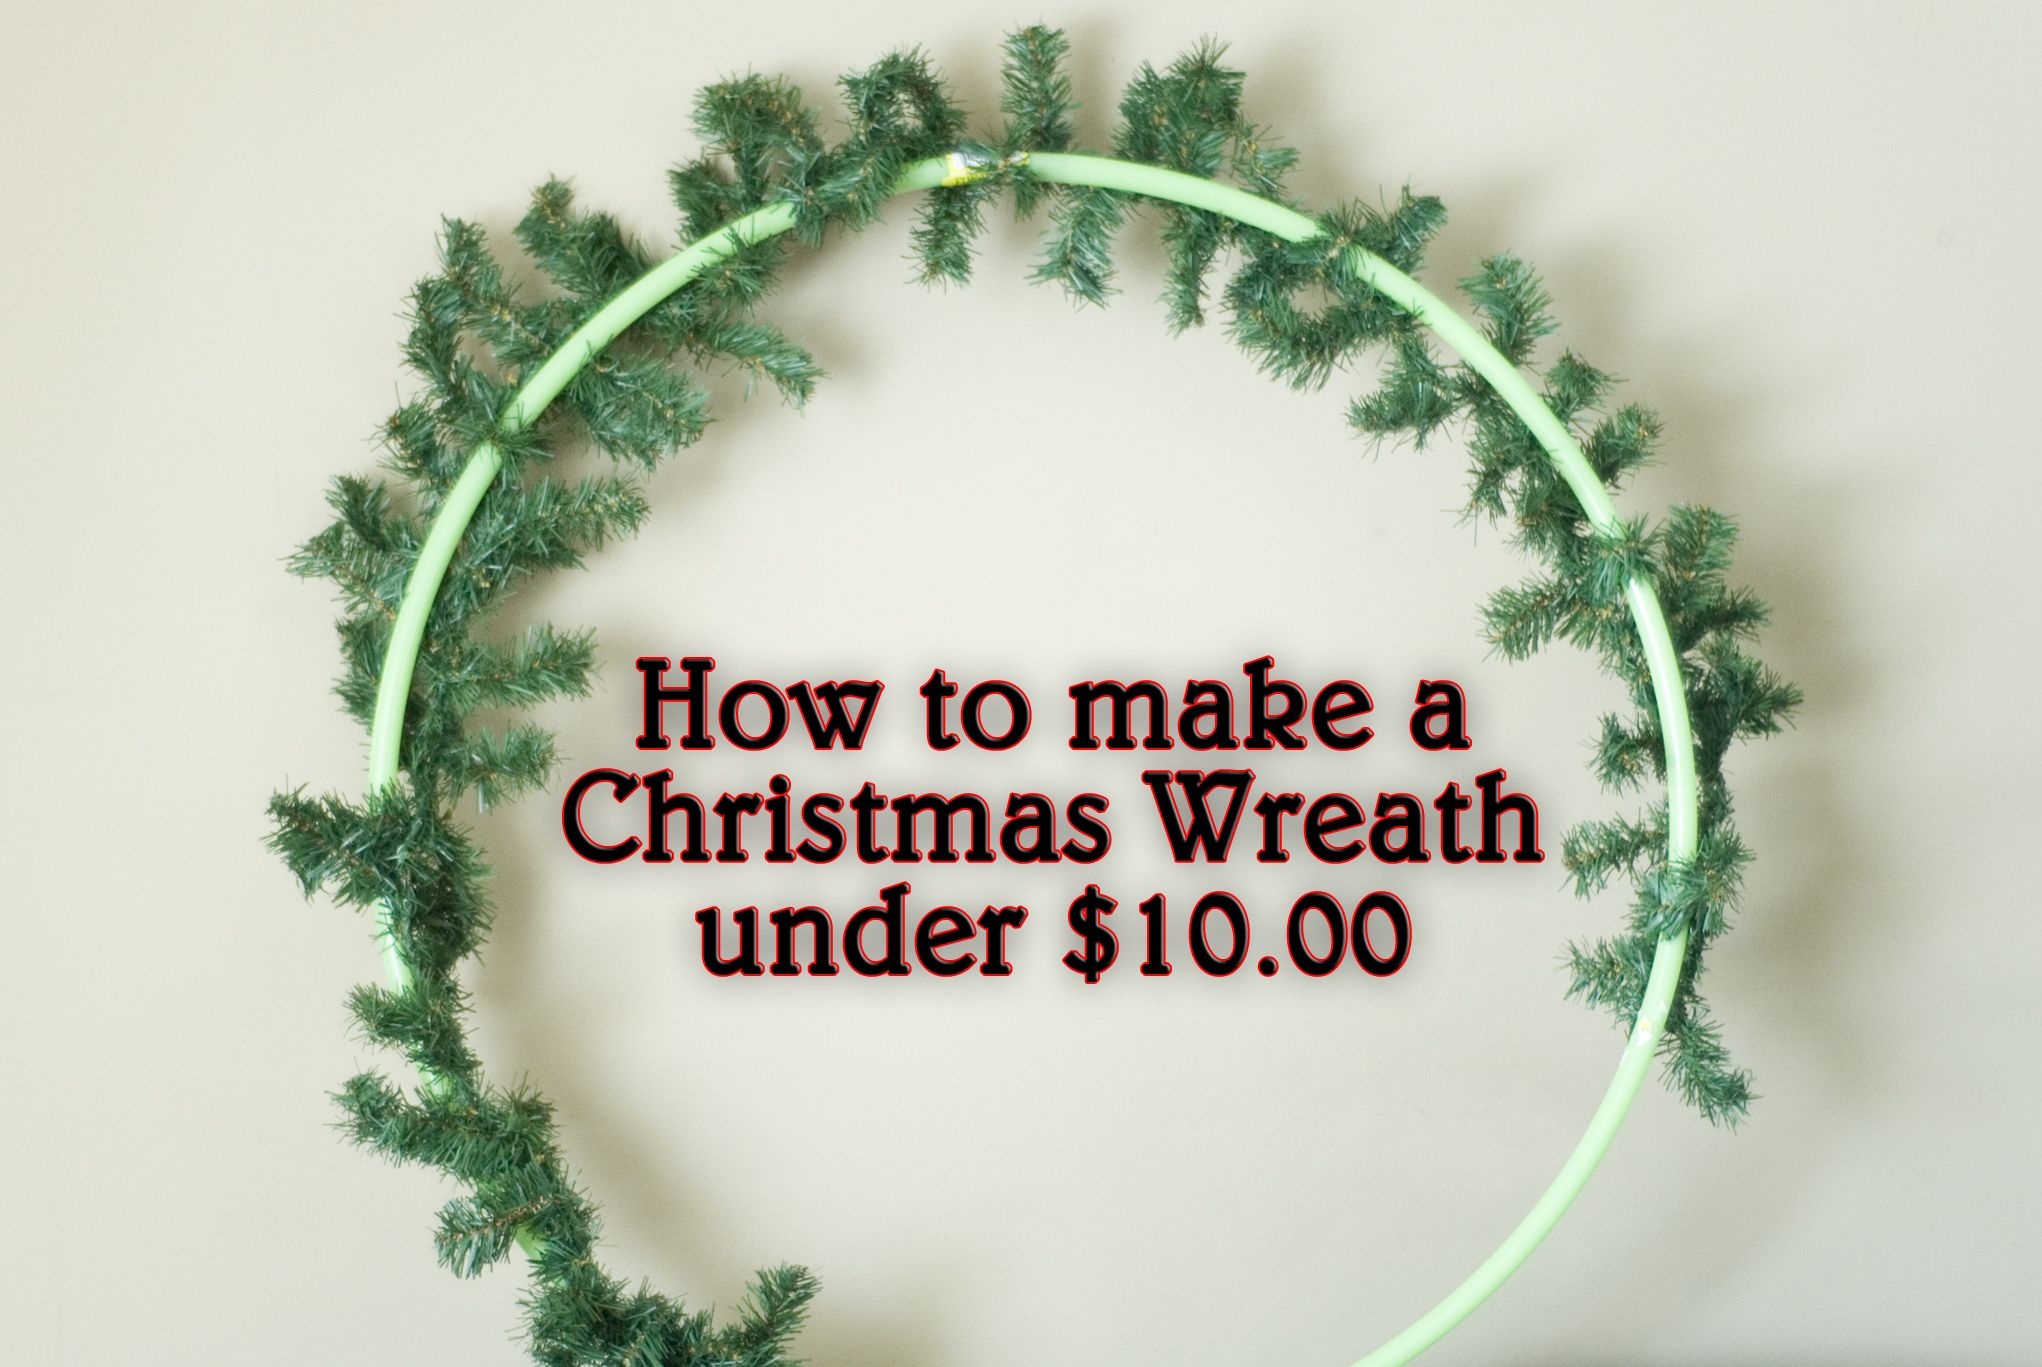 How To Make A Giant Wreath For Under 10 00 Giants Wreath Wreaths Christmas Wreaths To Make